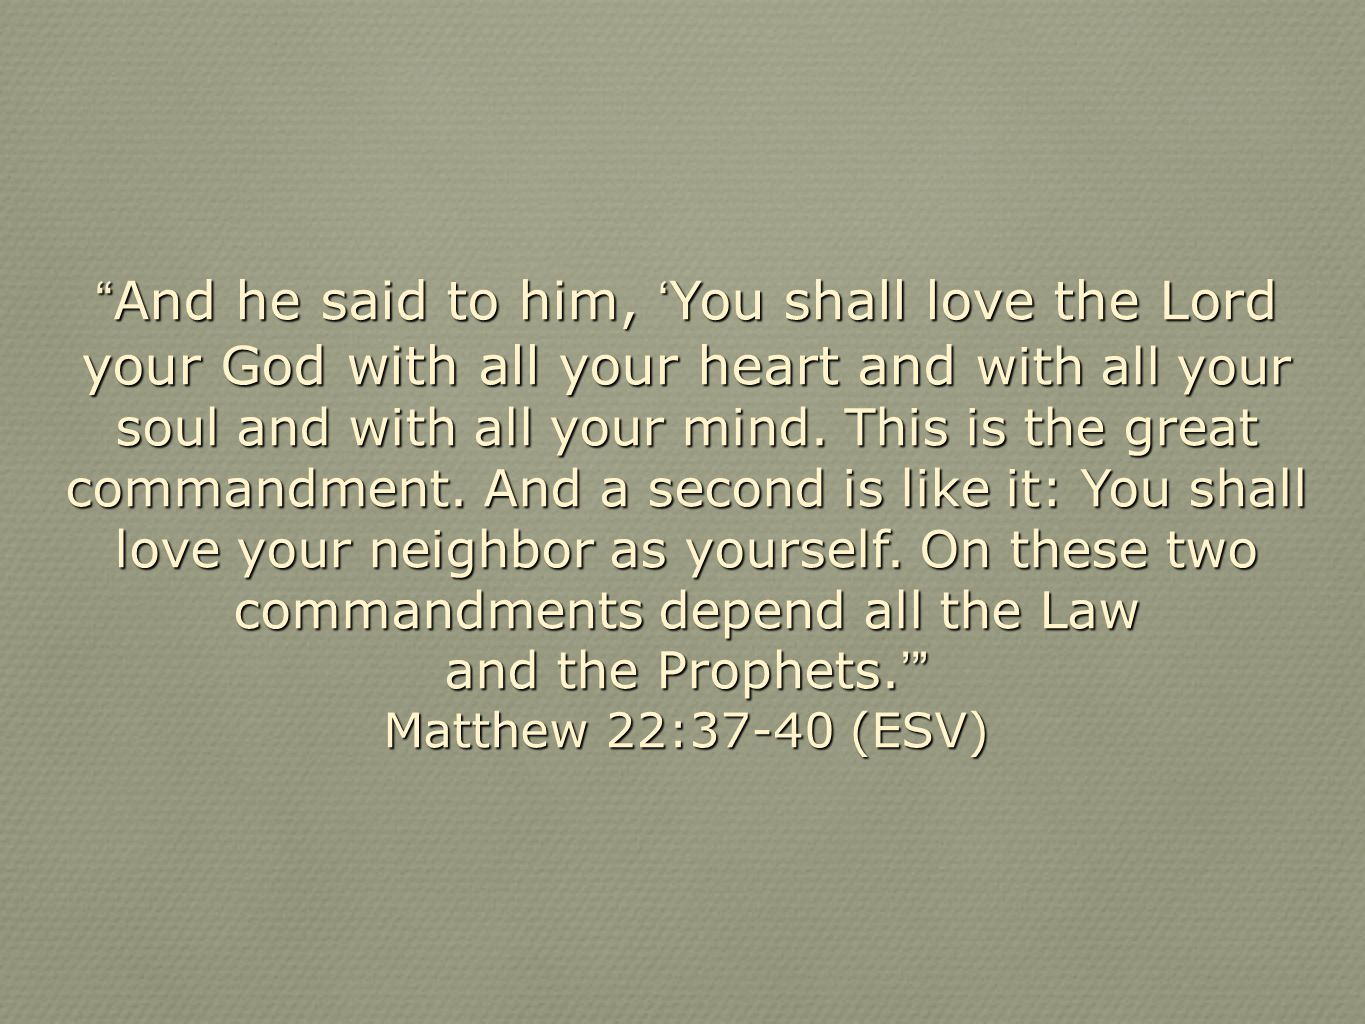 And he said to him, 'You shall love the Lord your God with all your heart and with all your soul and with all your mind. This is the great commandment. And a second is like it: You shall love your neighbor as yourself. On these two commandments depend all the Law